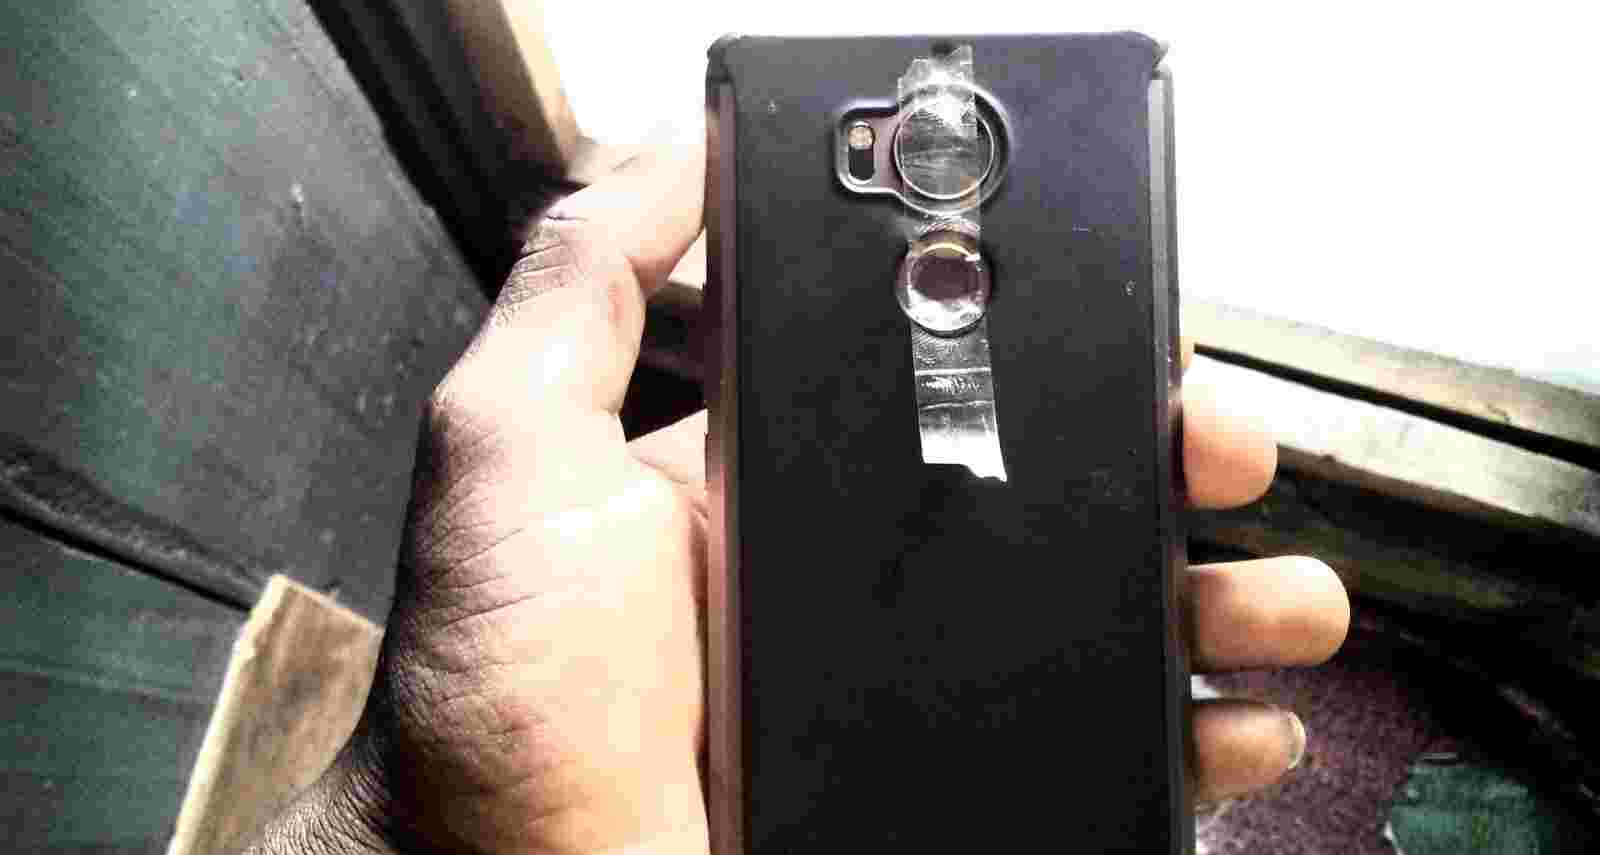 How To Hack Any Phone's Fingerprint Reader In 2mins